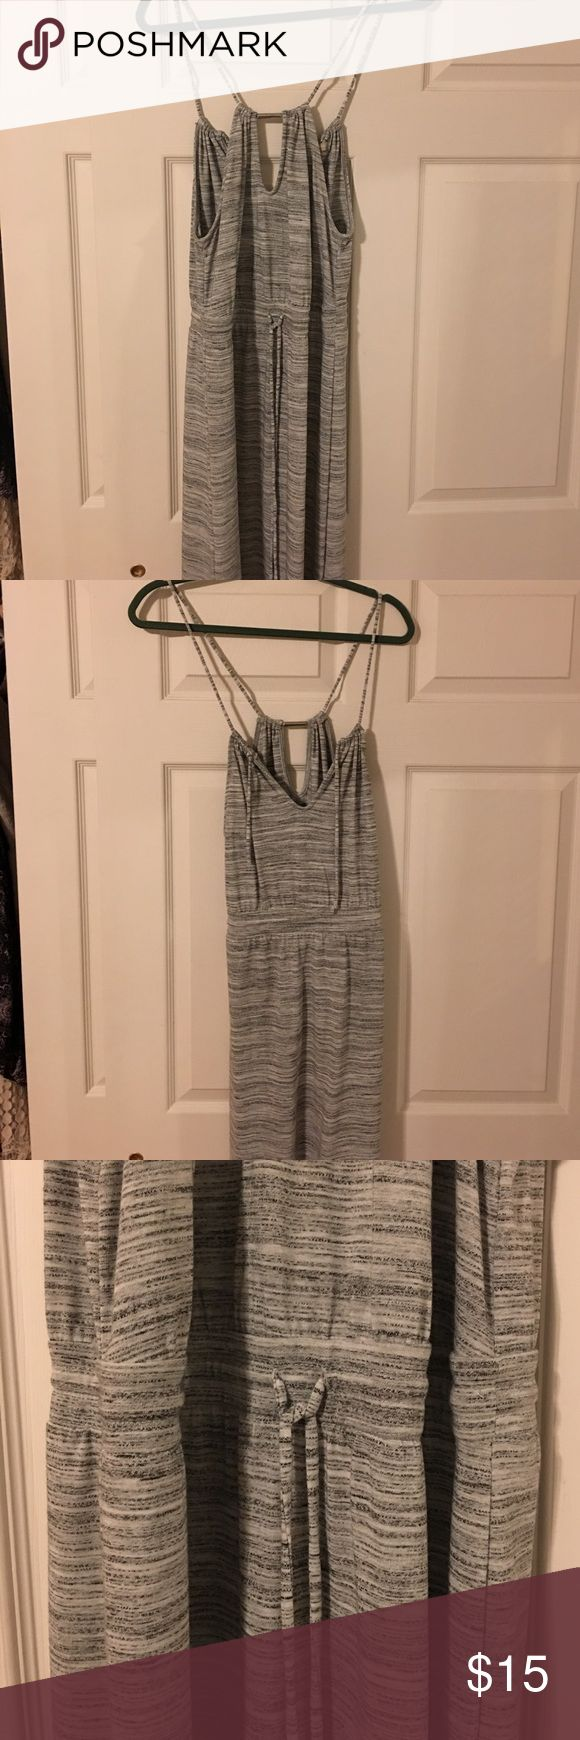 Banana Republic grey heather strappy maxi dress Long, heather grey/white maxi dress. Has a tie at the waist to give you more shape. Shoulder straps are adjustable. Great condition, wore maybe twice. Has modest slits at the bottom. Banana Republic Dresses Maxi